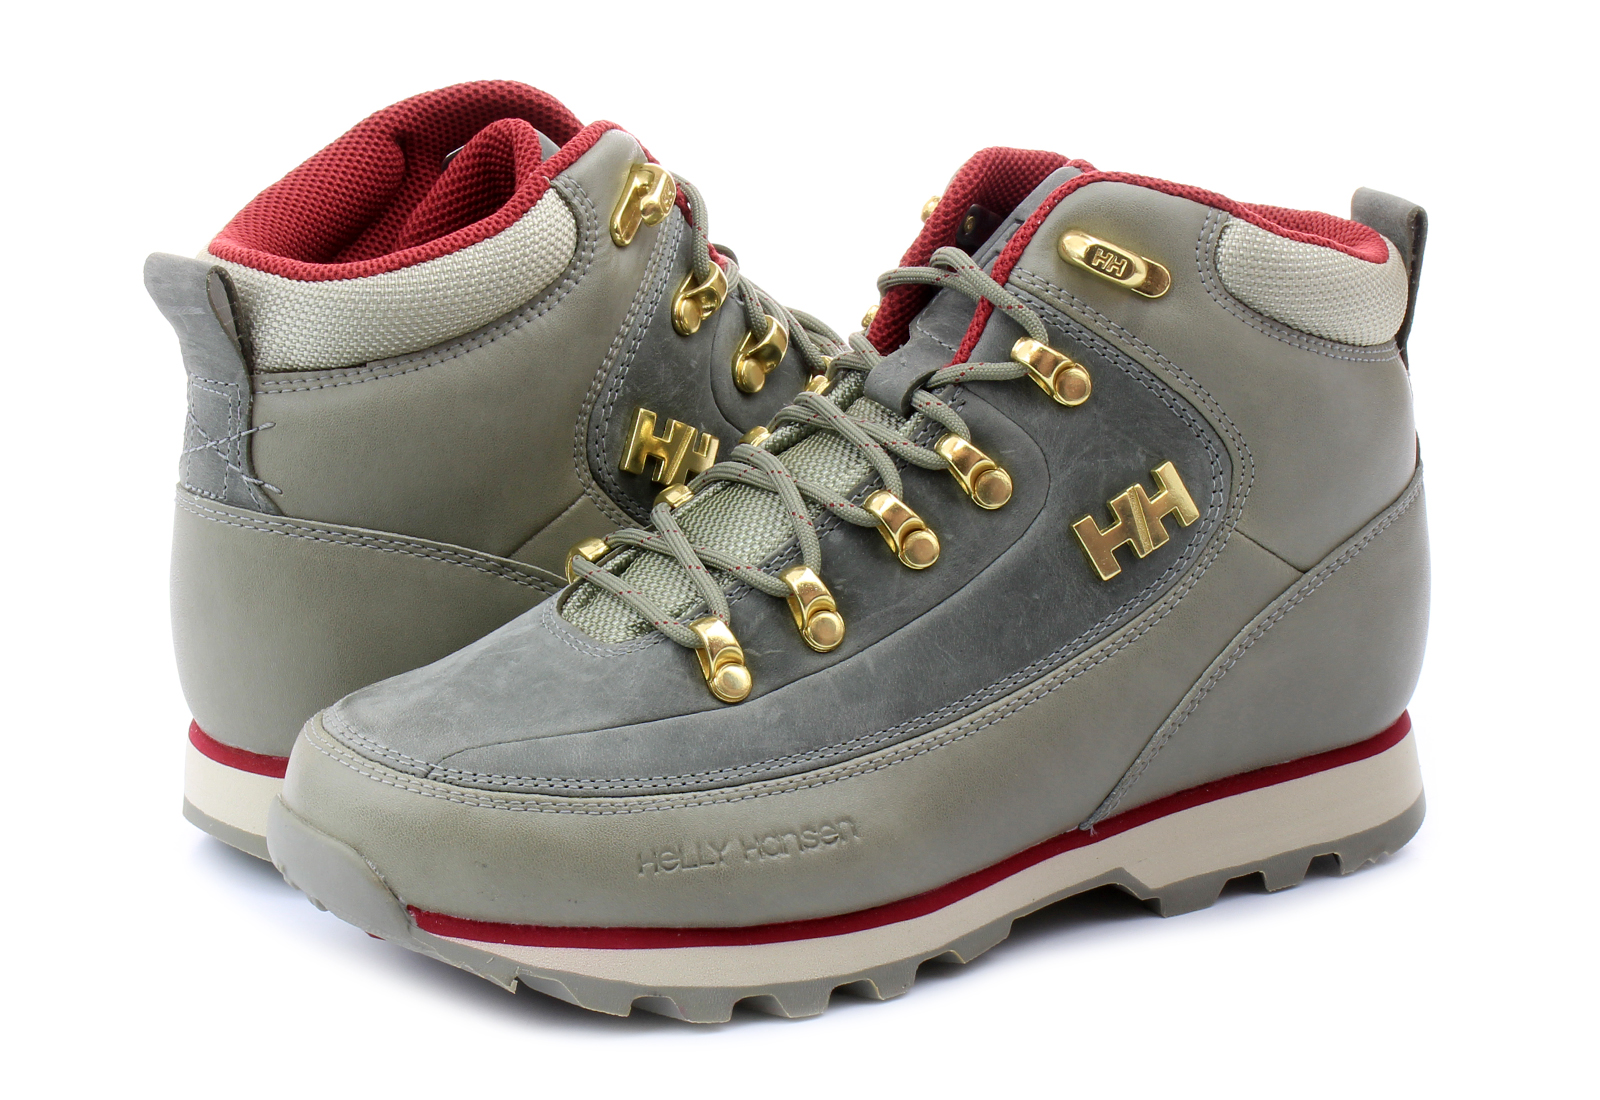 Helly Hansen Boots - W The Forester - 10516-710 - Online shop for ... 018a9a1feb